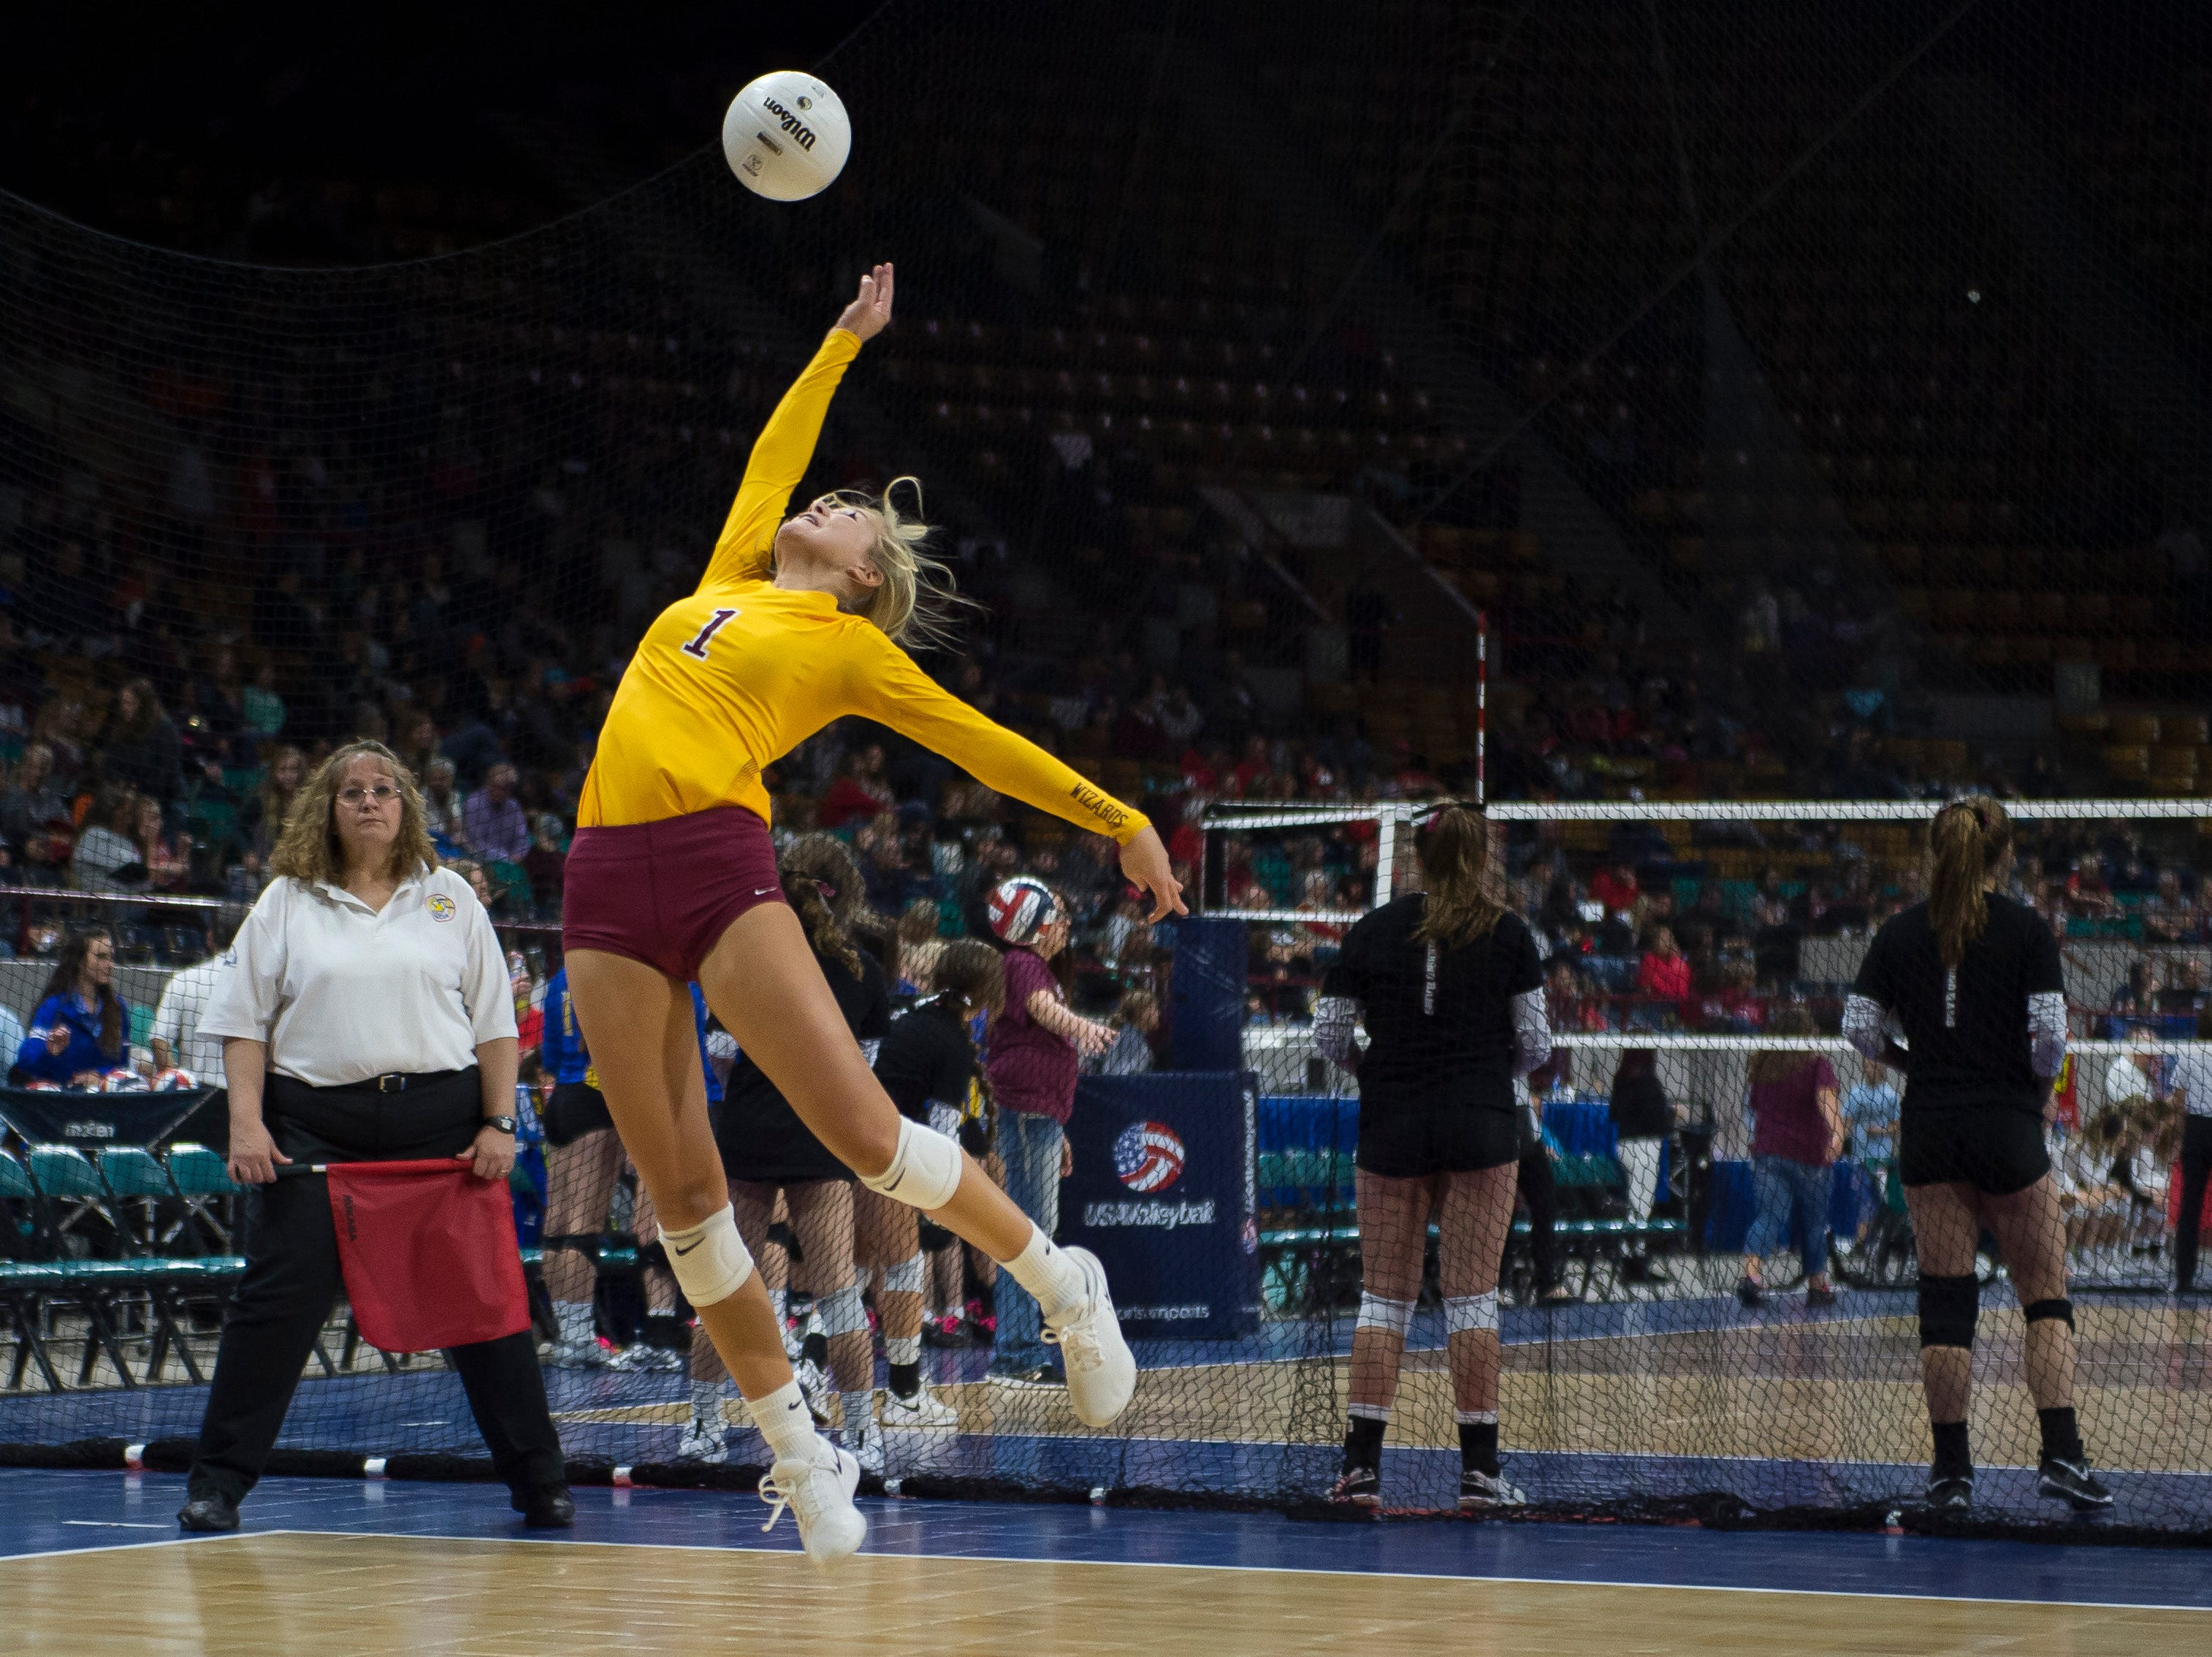 Windsor High School senior Hollie Hoffman (1) can't quite grab volley during a state first round game against Fossil Ridge High School on Thursday, Nov. 8, 2018, at the Denver Coliseum in Denver, Colo.